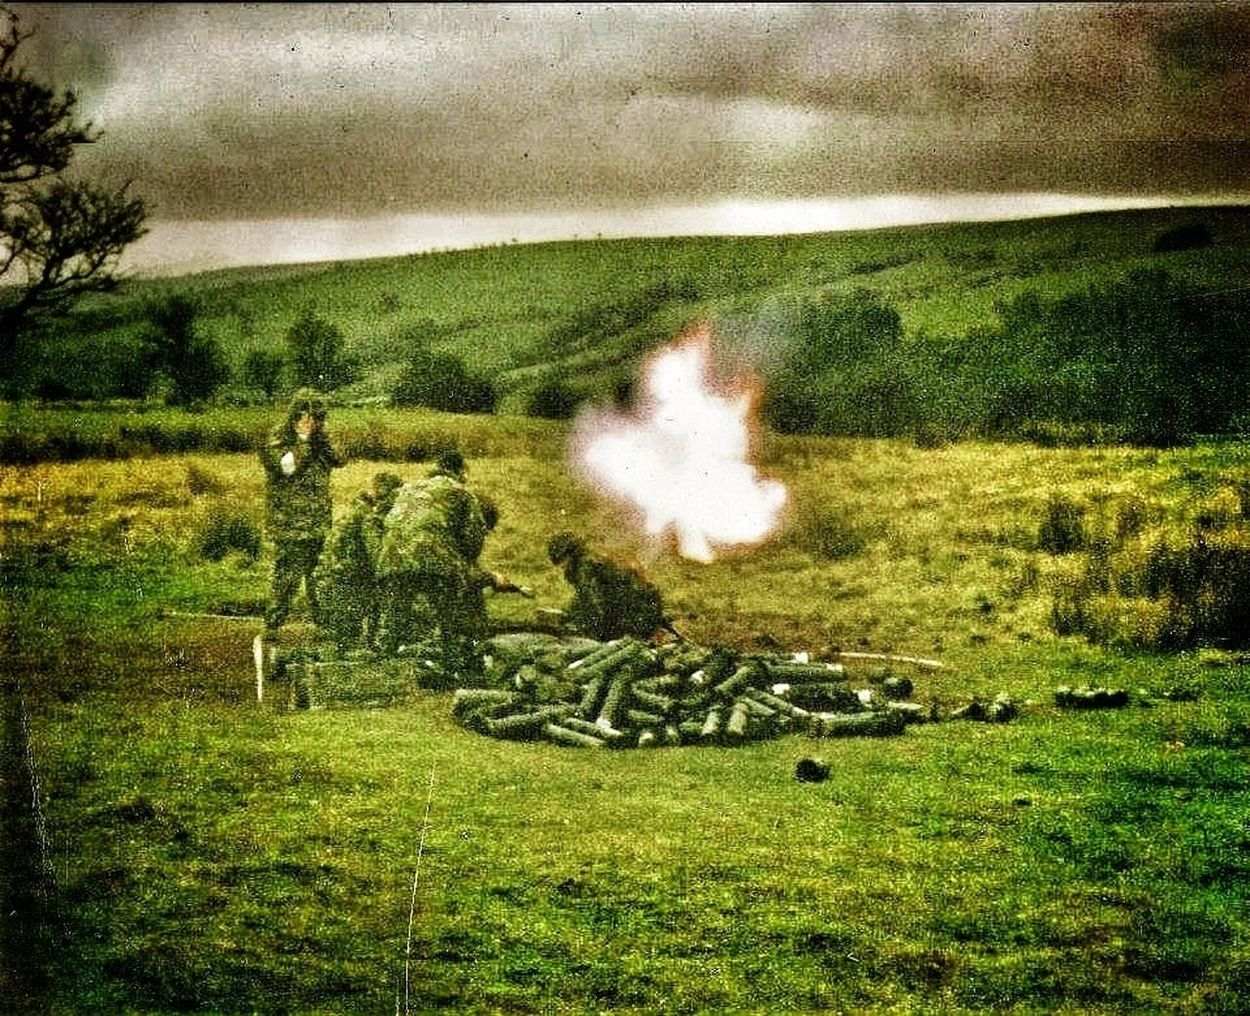 Me firing 81mm mortars in Wales. Mortar Platoon, Z Company, 2nd Battalion the Princess of Wales's Royal Regiment. Mortar Fire Incoming Tigers PWRR